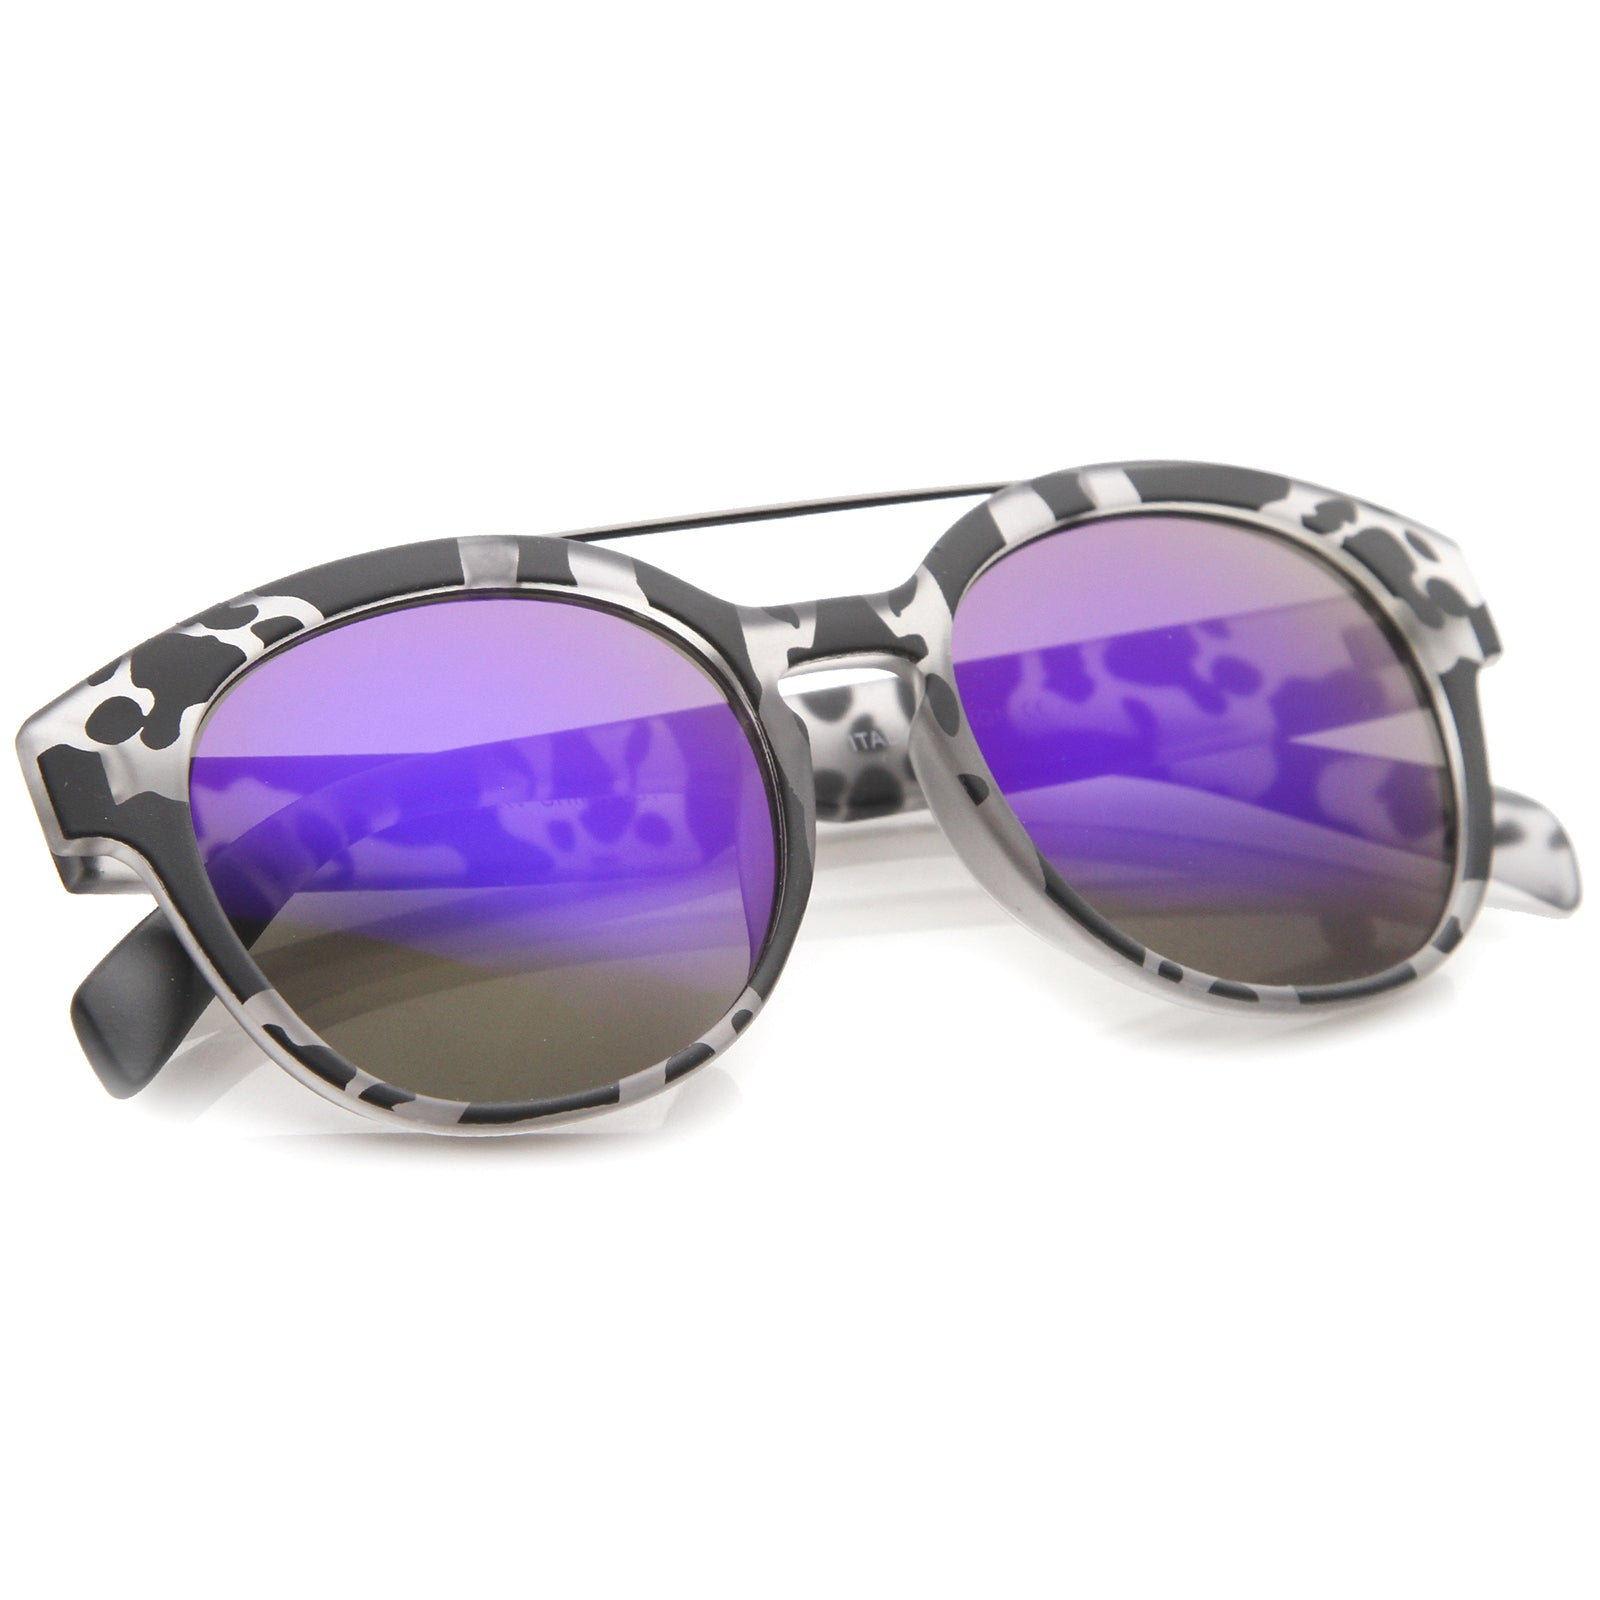 Modern Slim Metal Crossbar Iridescent Lens Horn Rimmed Sunglasses 51mm - sunglass.la - 16